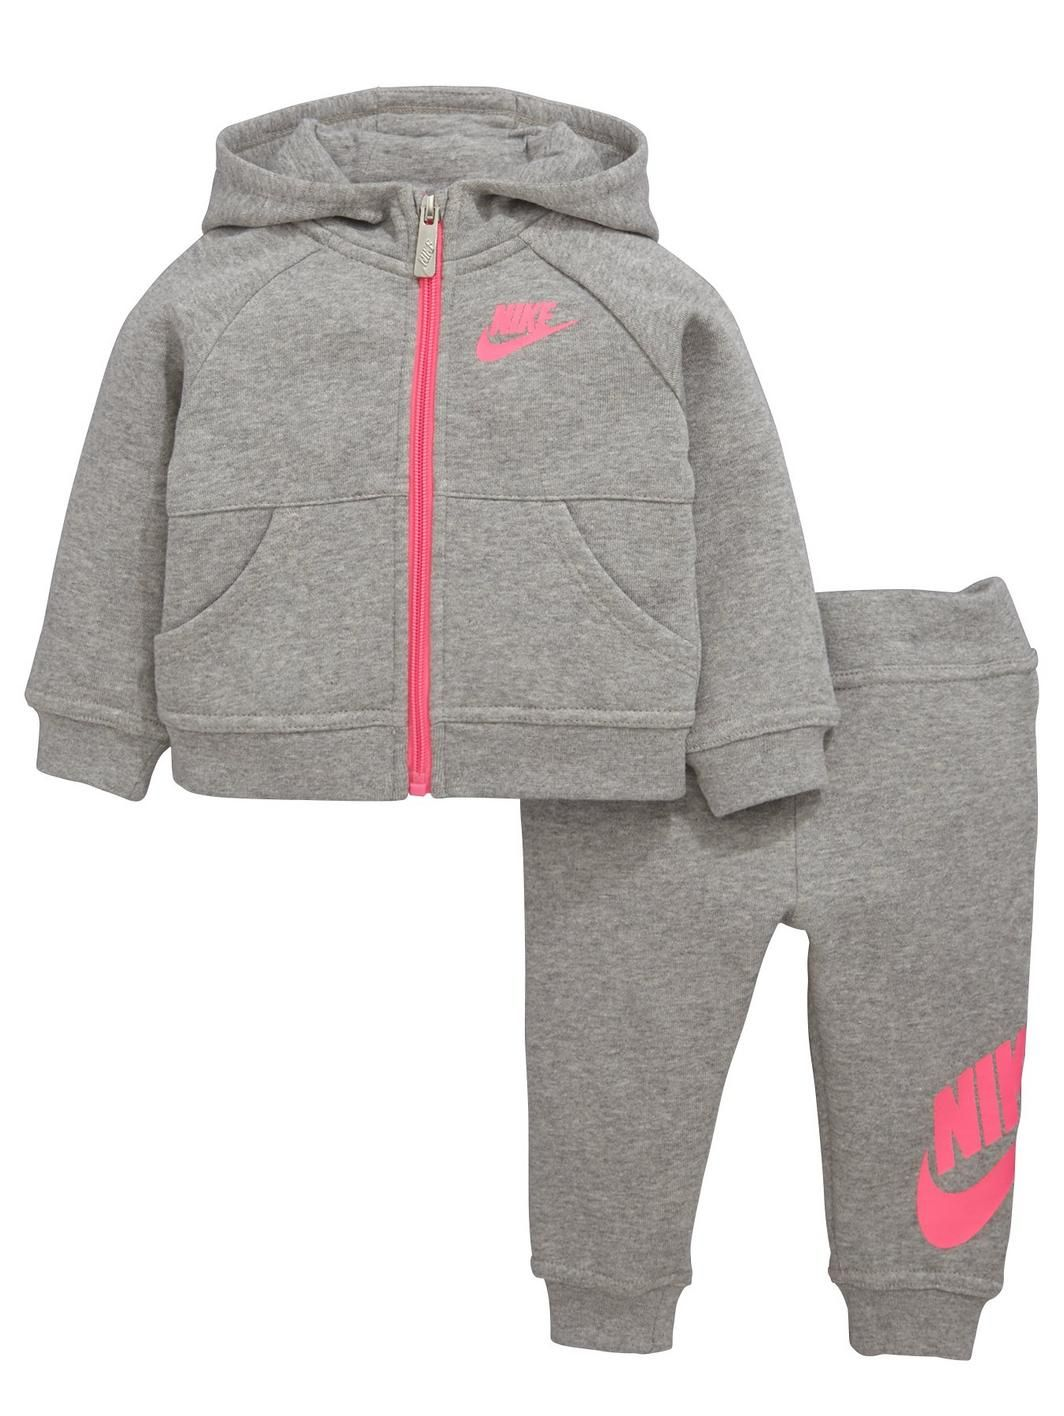 Nike Baby Girl Clothes Endearing Nike Store $19 On  Pinterest  Babies Girls And Babies Clothes Decorating Inspiration